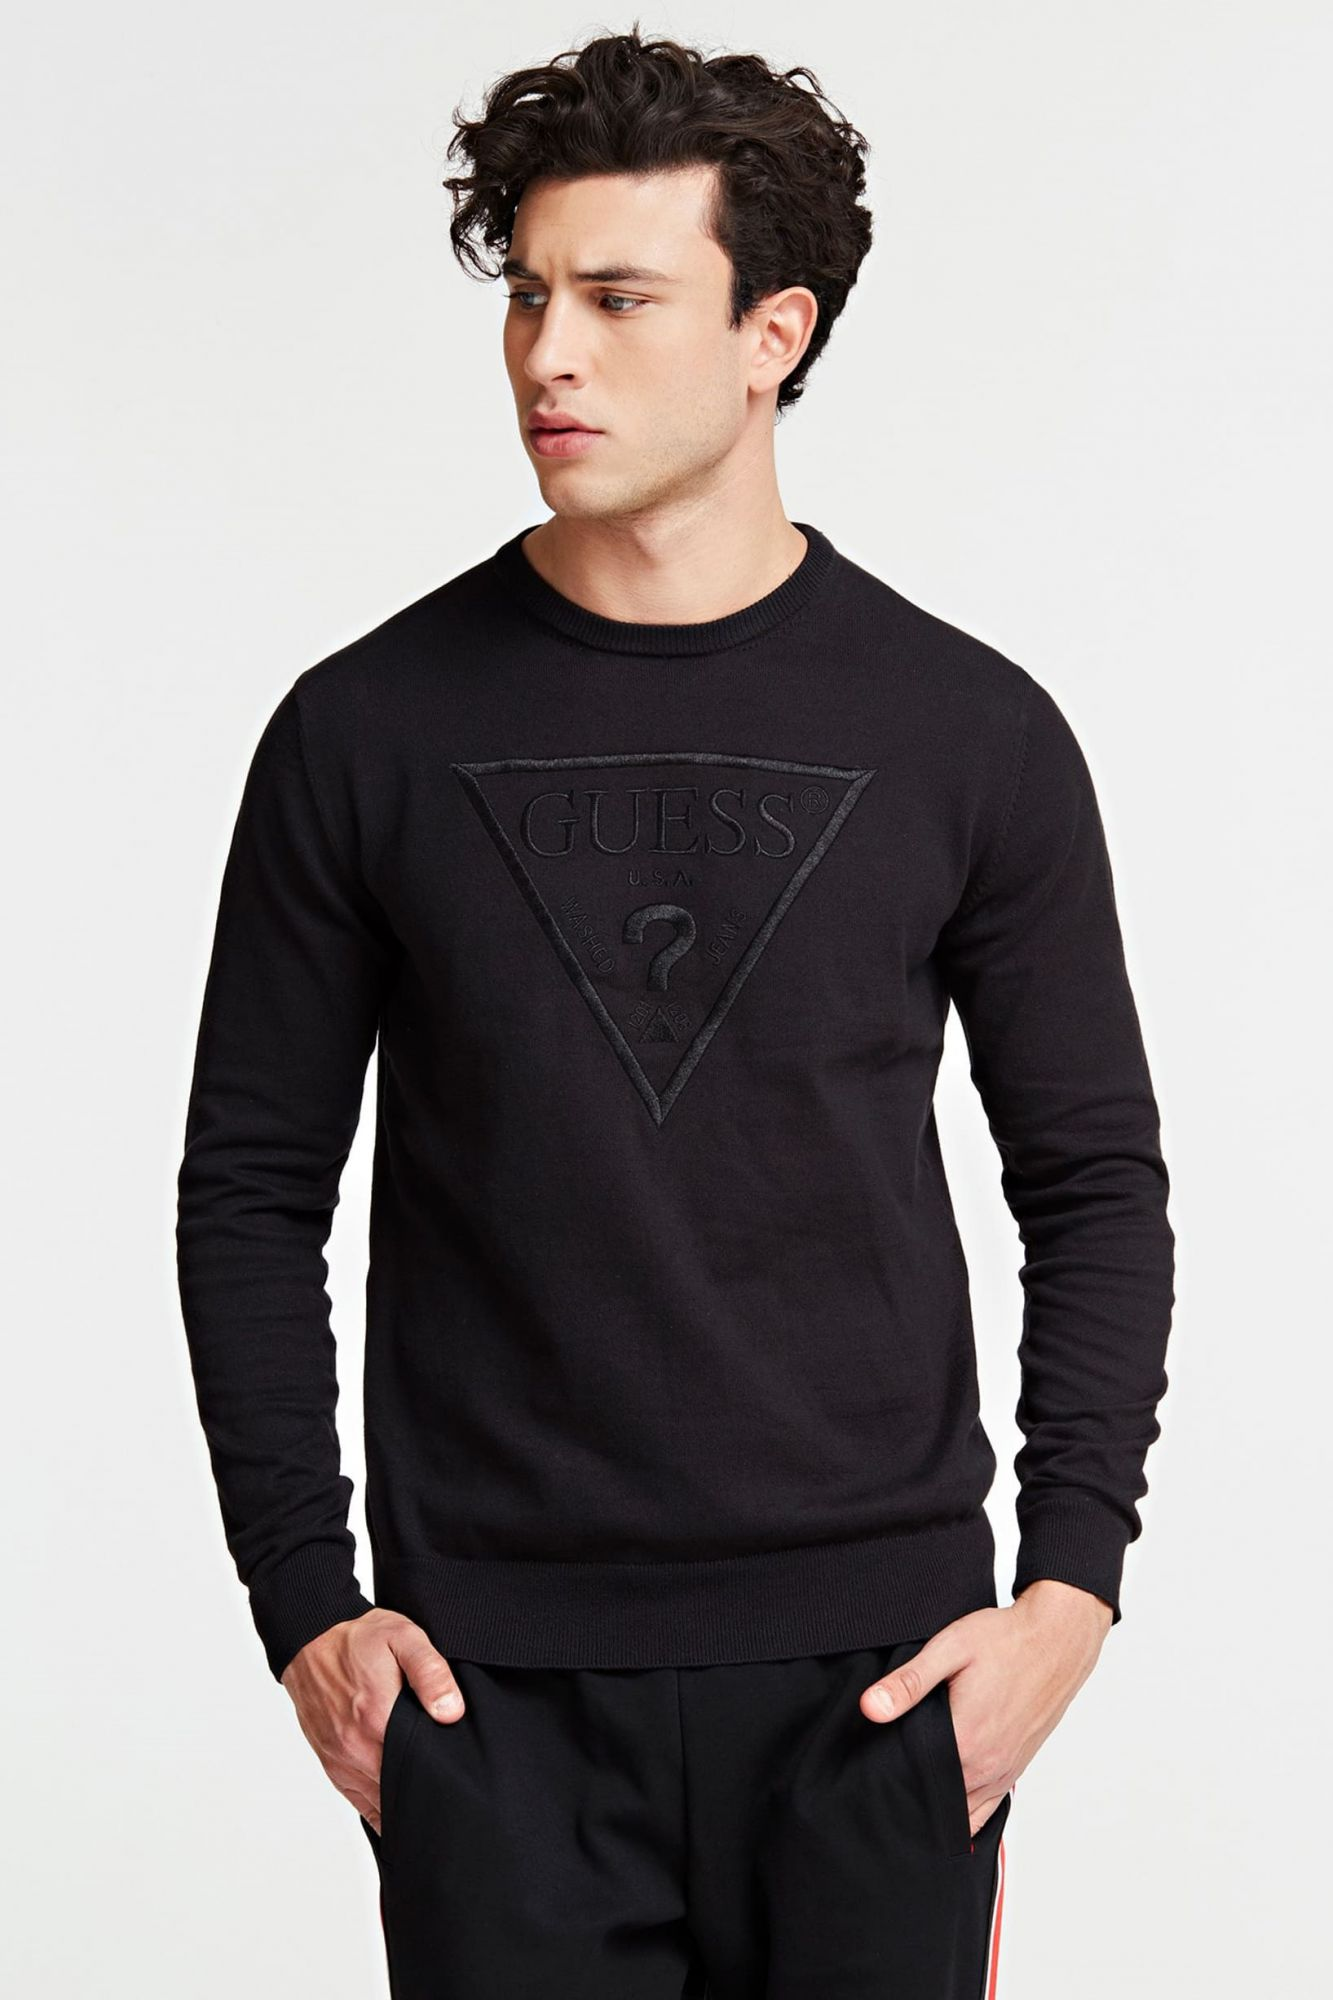 Guess čierny sveter Triangle Logo Sweater - M